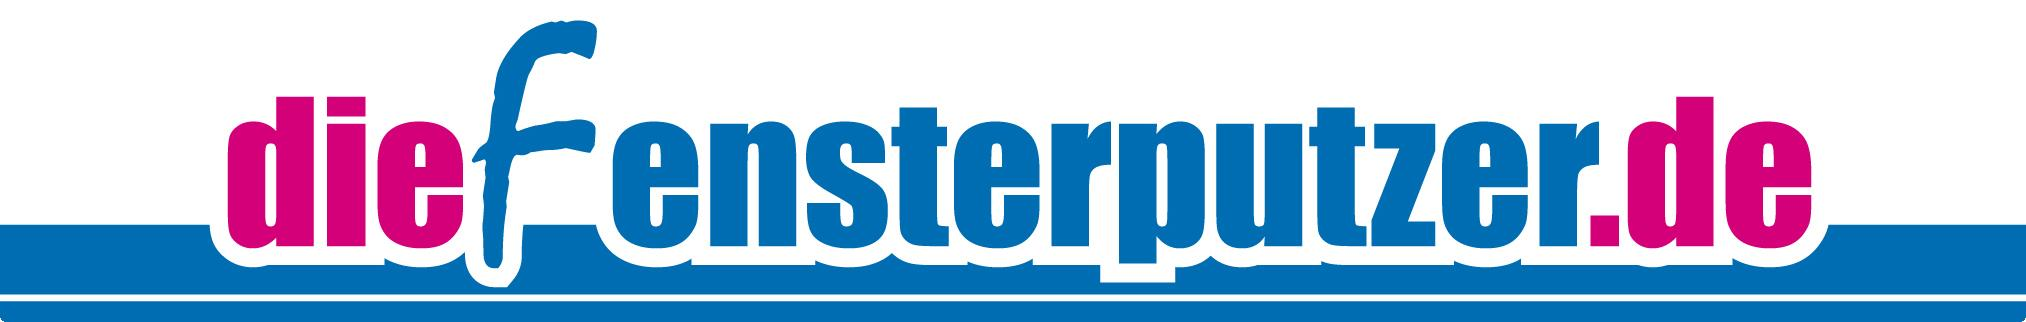 Logo dieFensterputzer.de